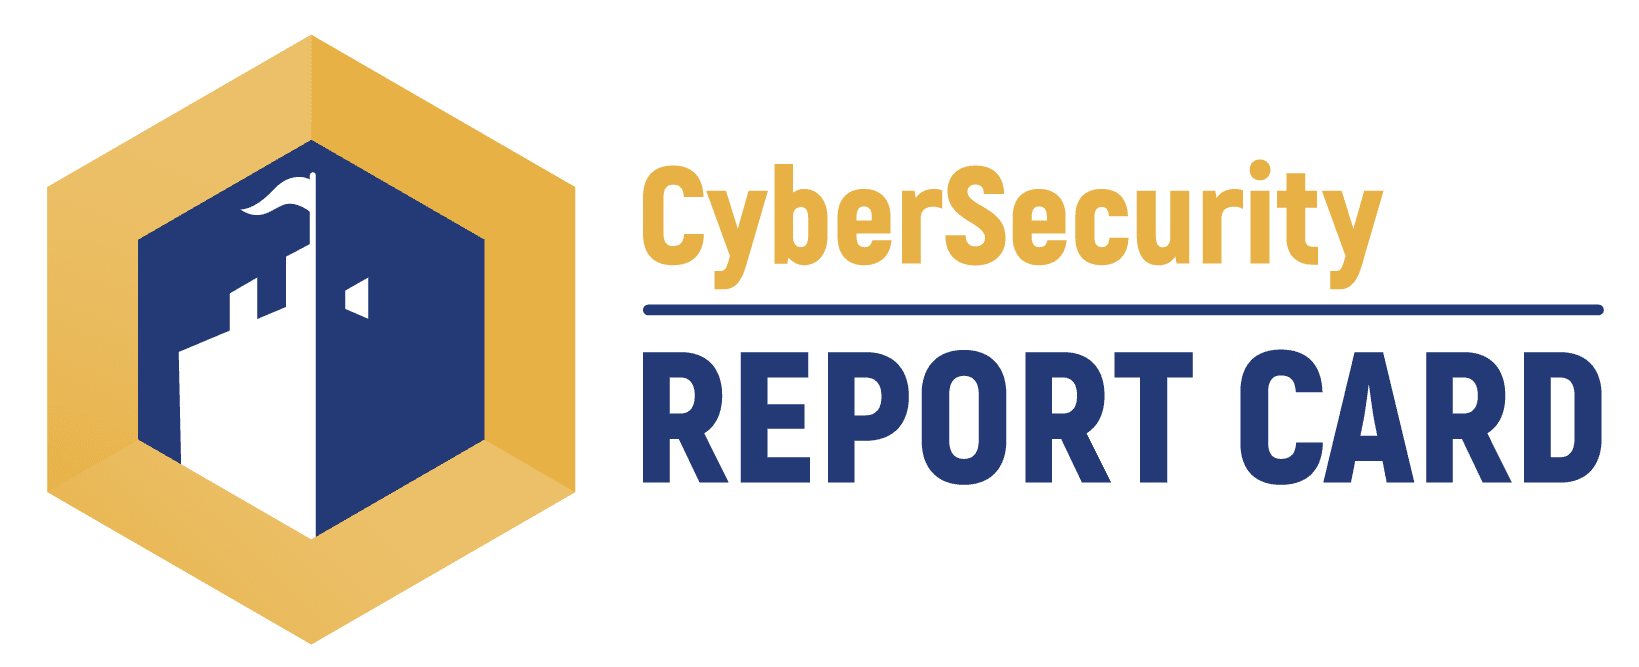 Cybersecruity Report Card logo